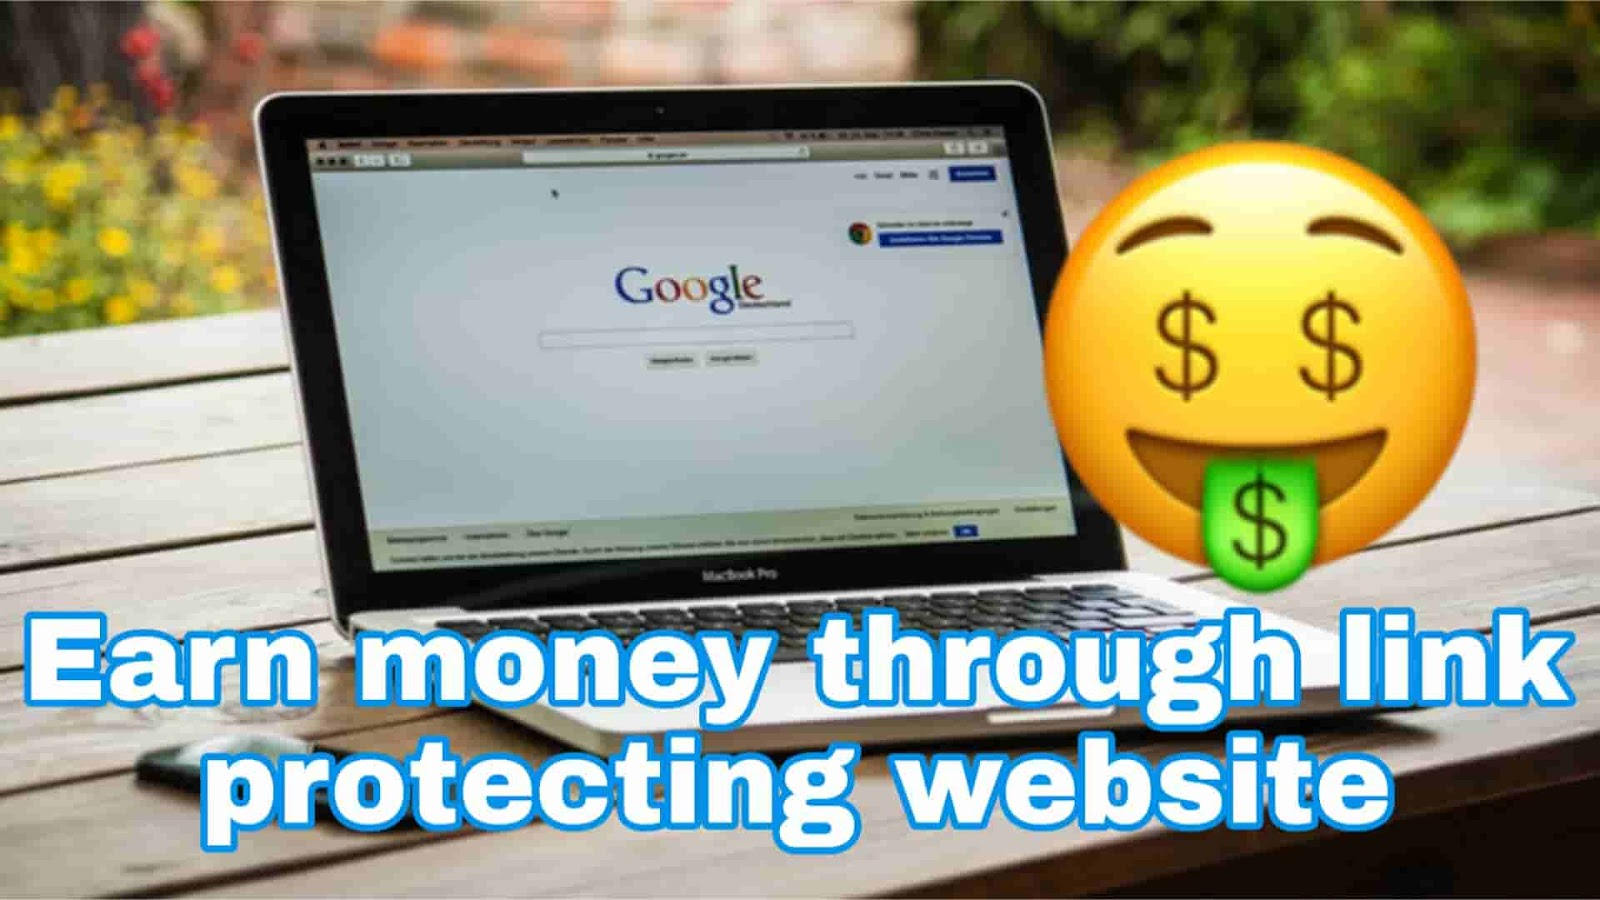 Earn money by link protecting sites, everything you should know.